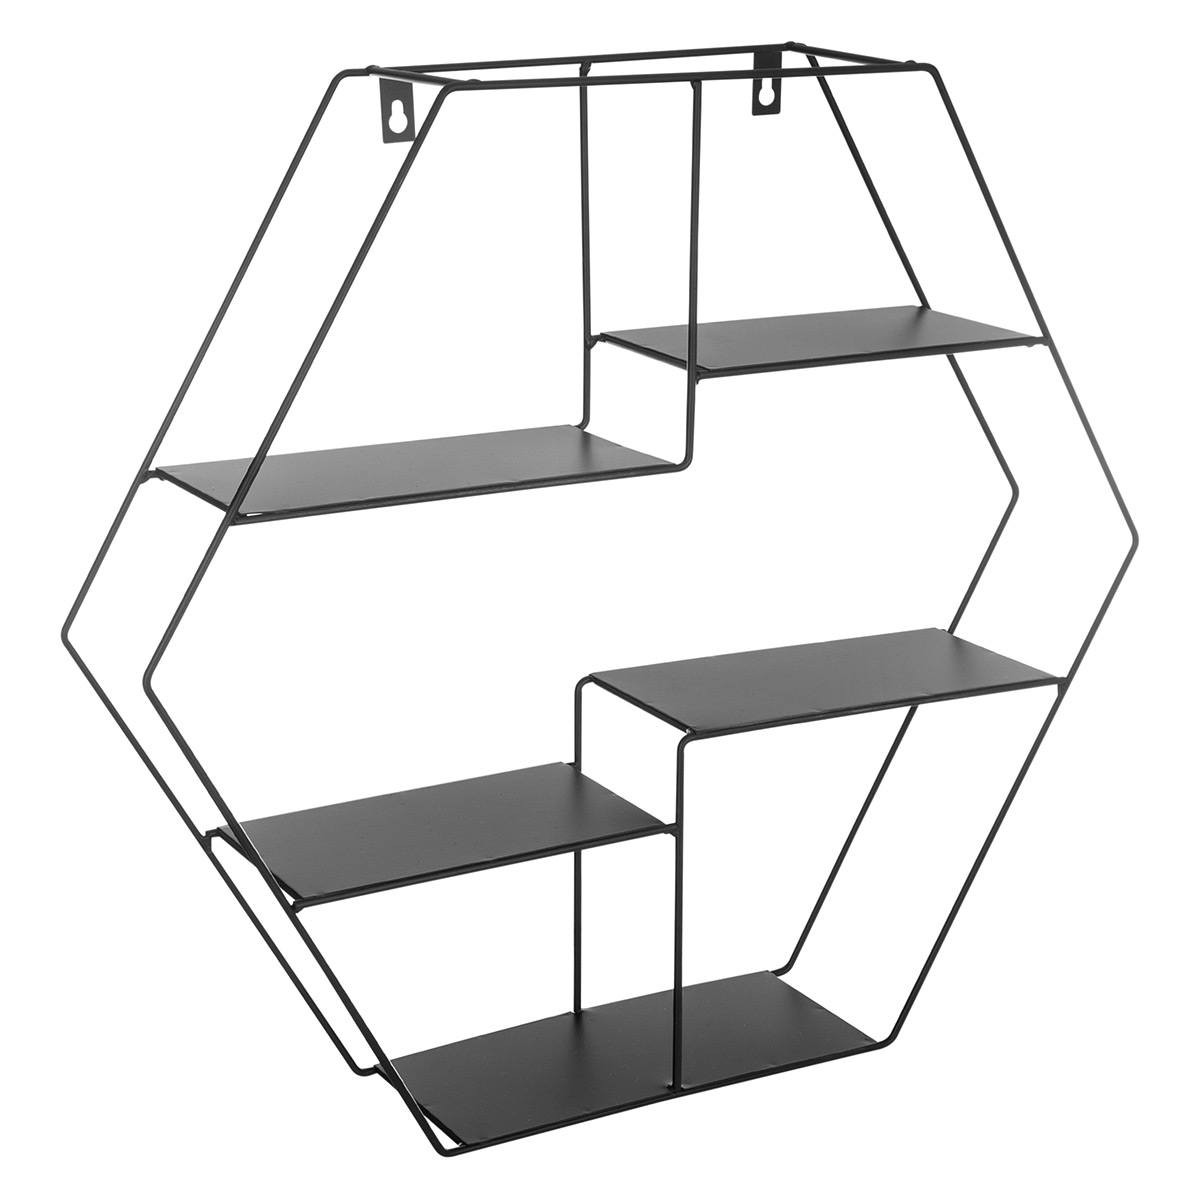 Tag re murale en m tal hexagonale noir for Etagere murale aluminium